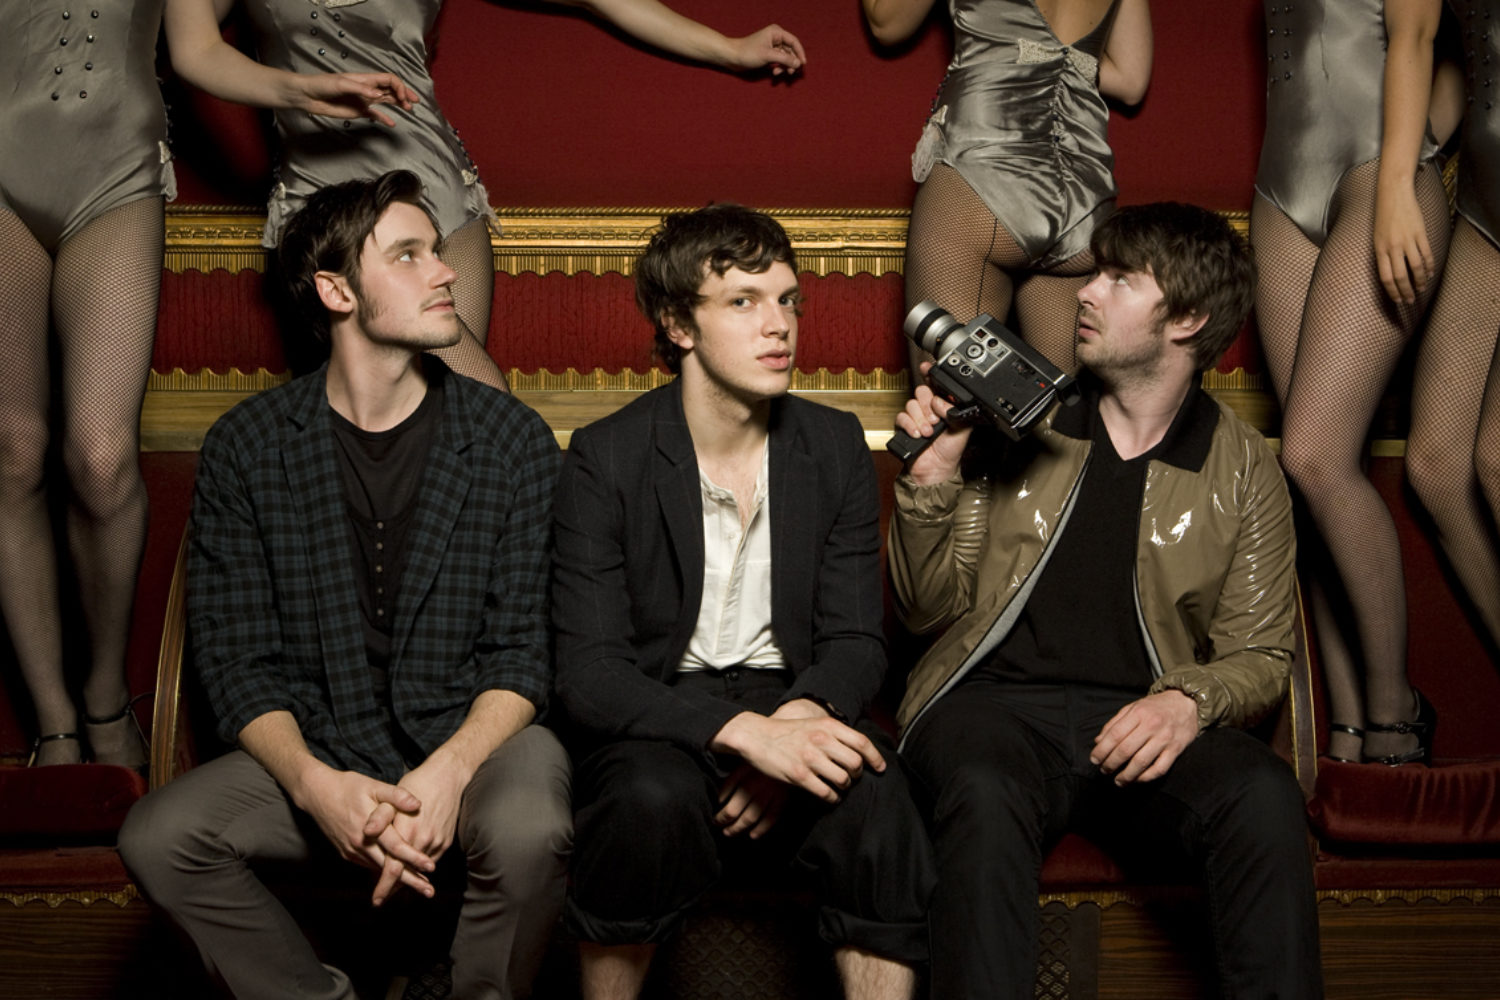 Looking back on Friendly Fires' self-titled debut